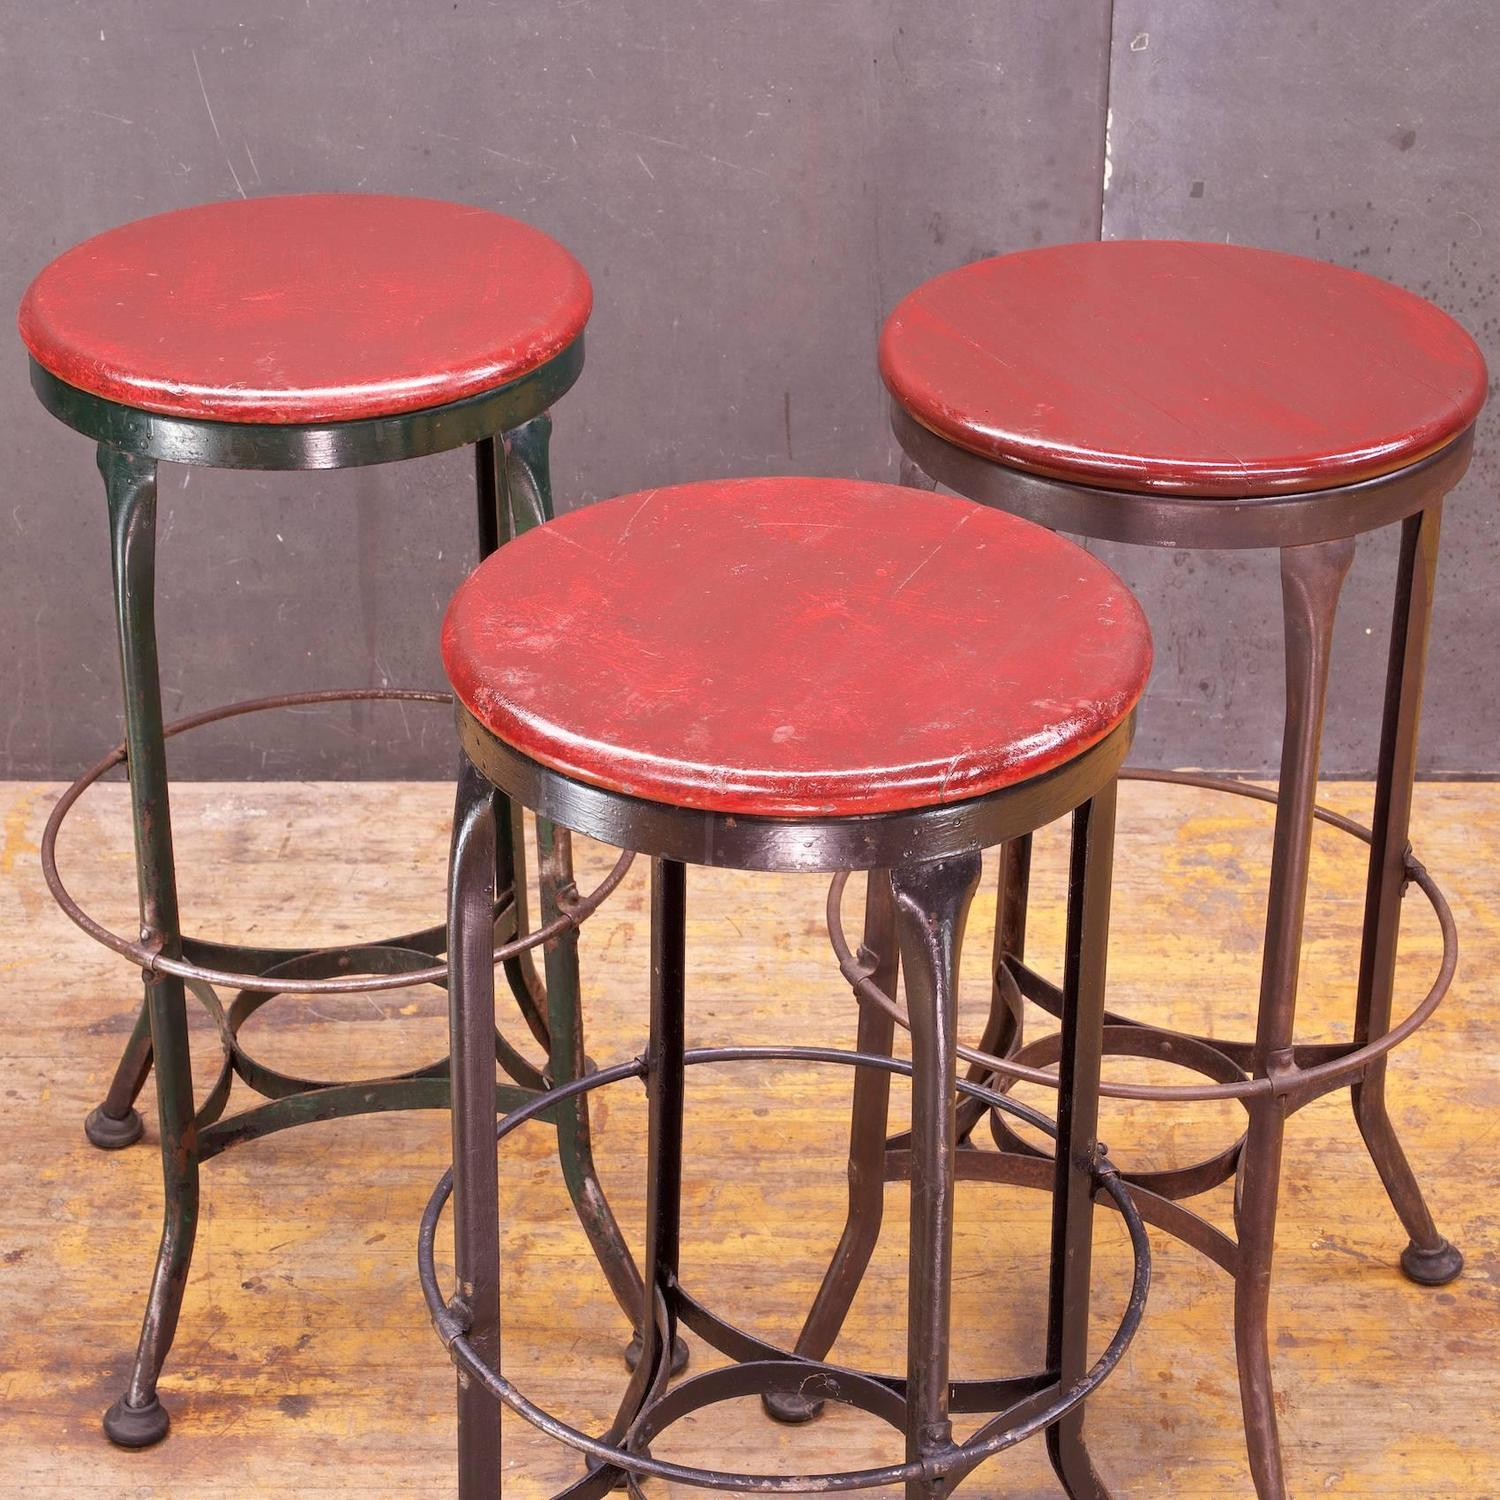 Vintage 1930s Toledo Metals Company High Stools For Sale